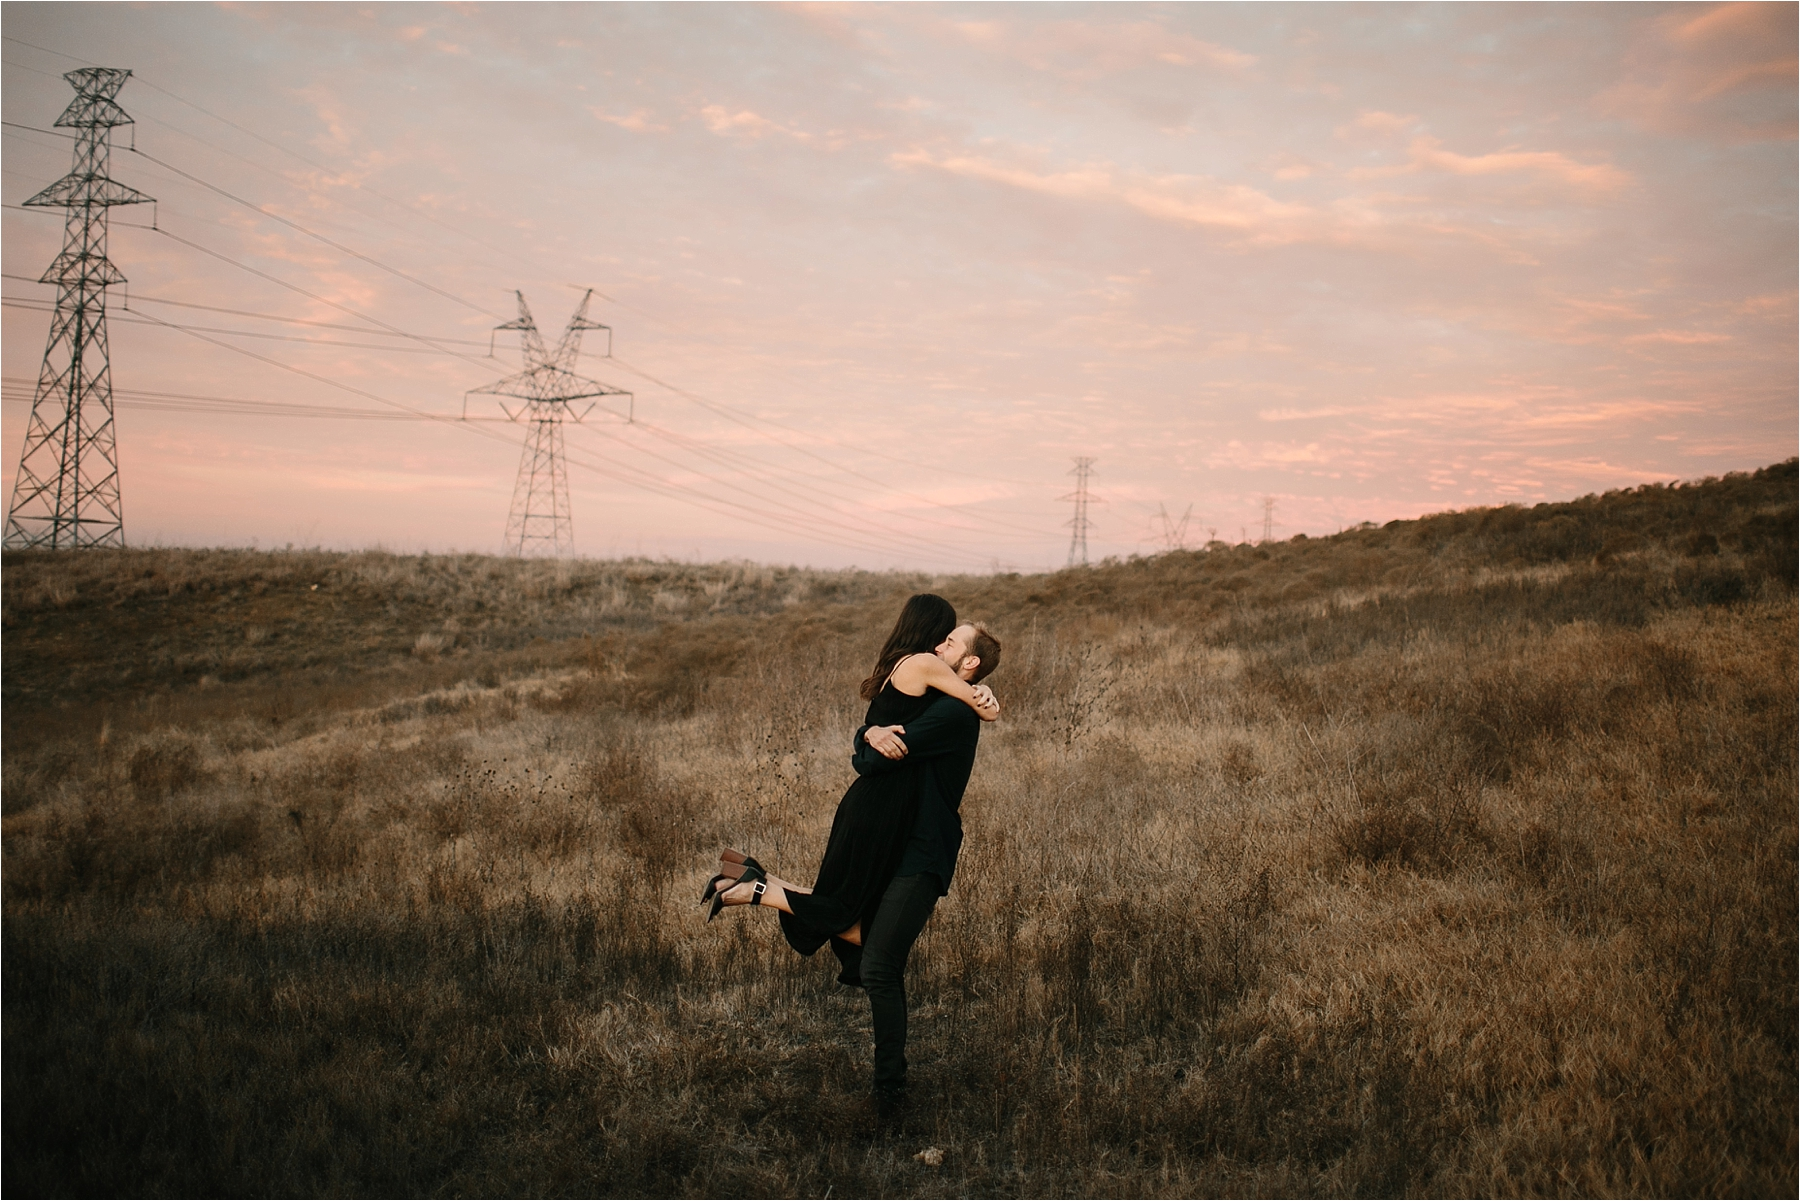 Trey + Phoebe __ a playful, intimate engagement session with dark_neutral outfit inspiration by North Texas Wedding Photographer Rachel Meagan Photography __ 62